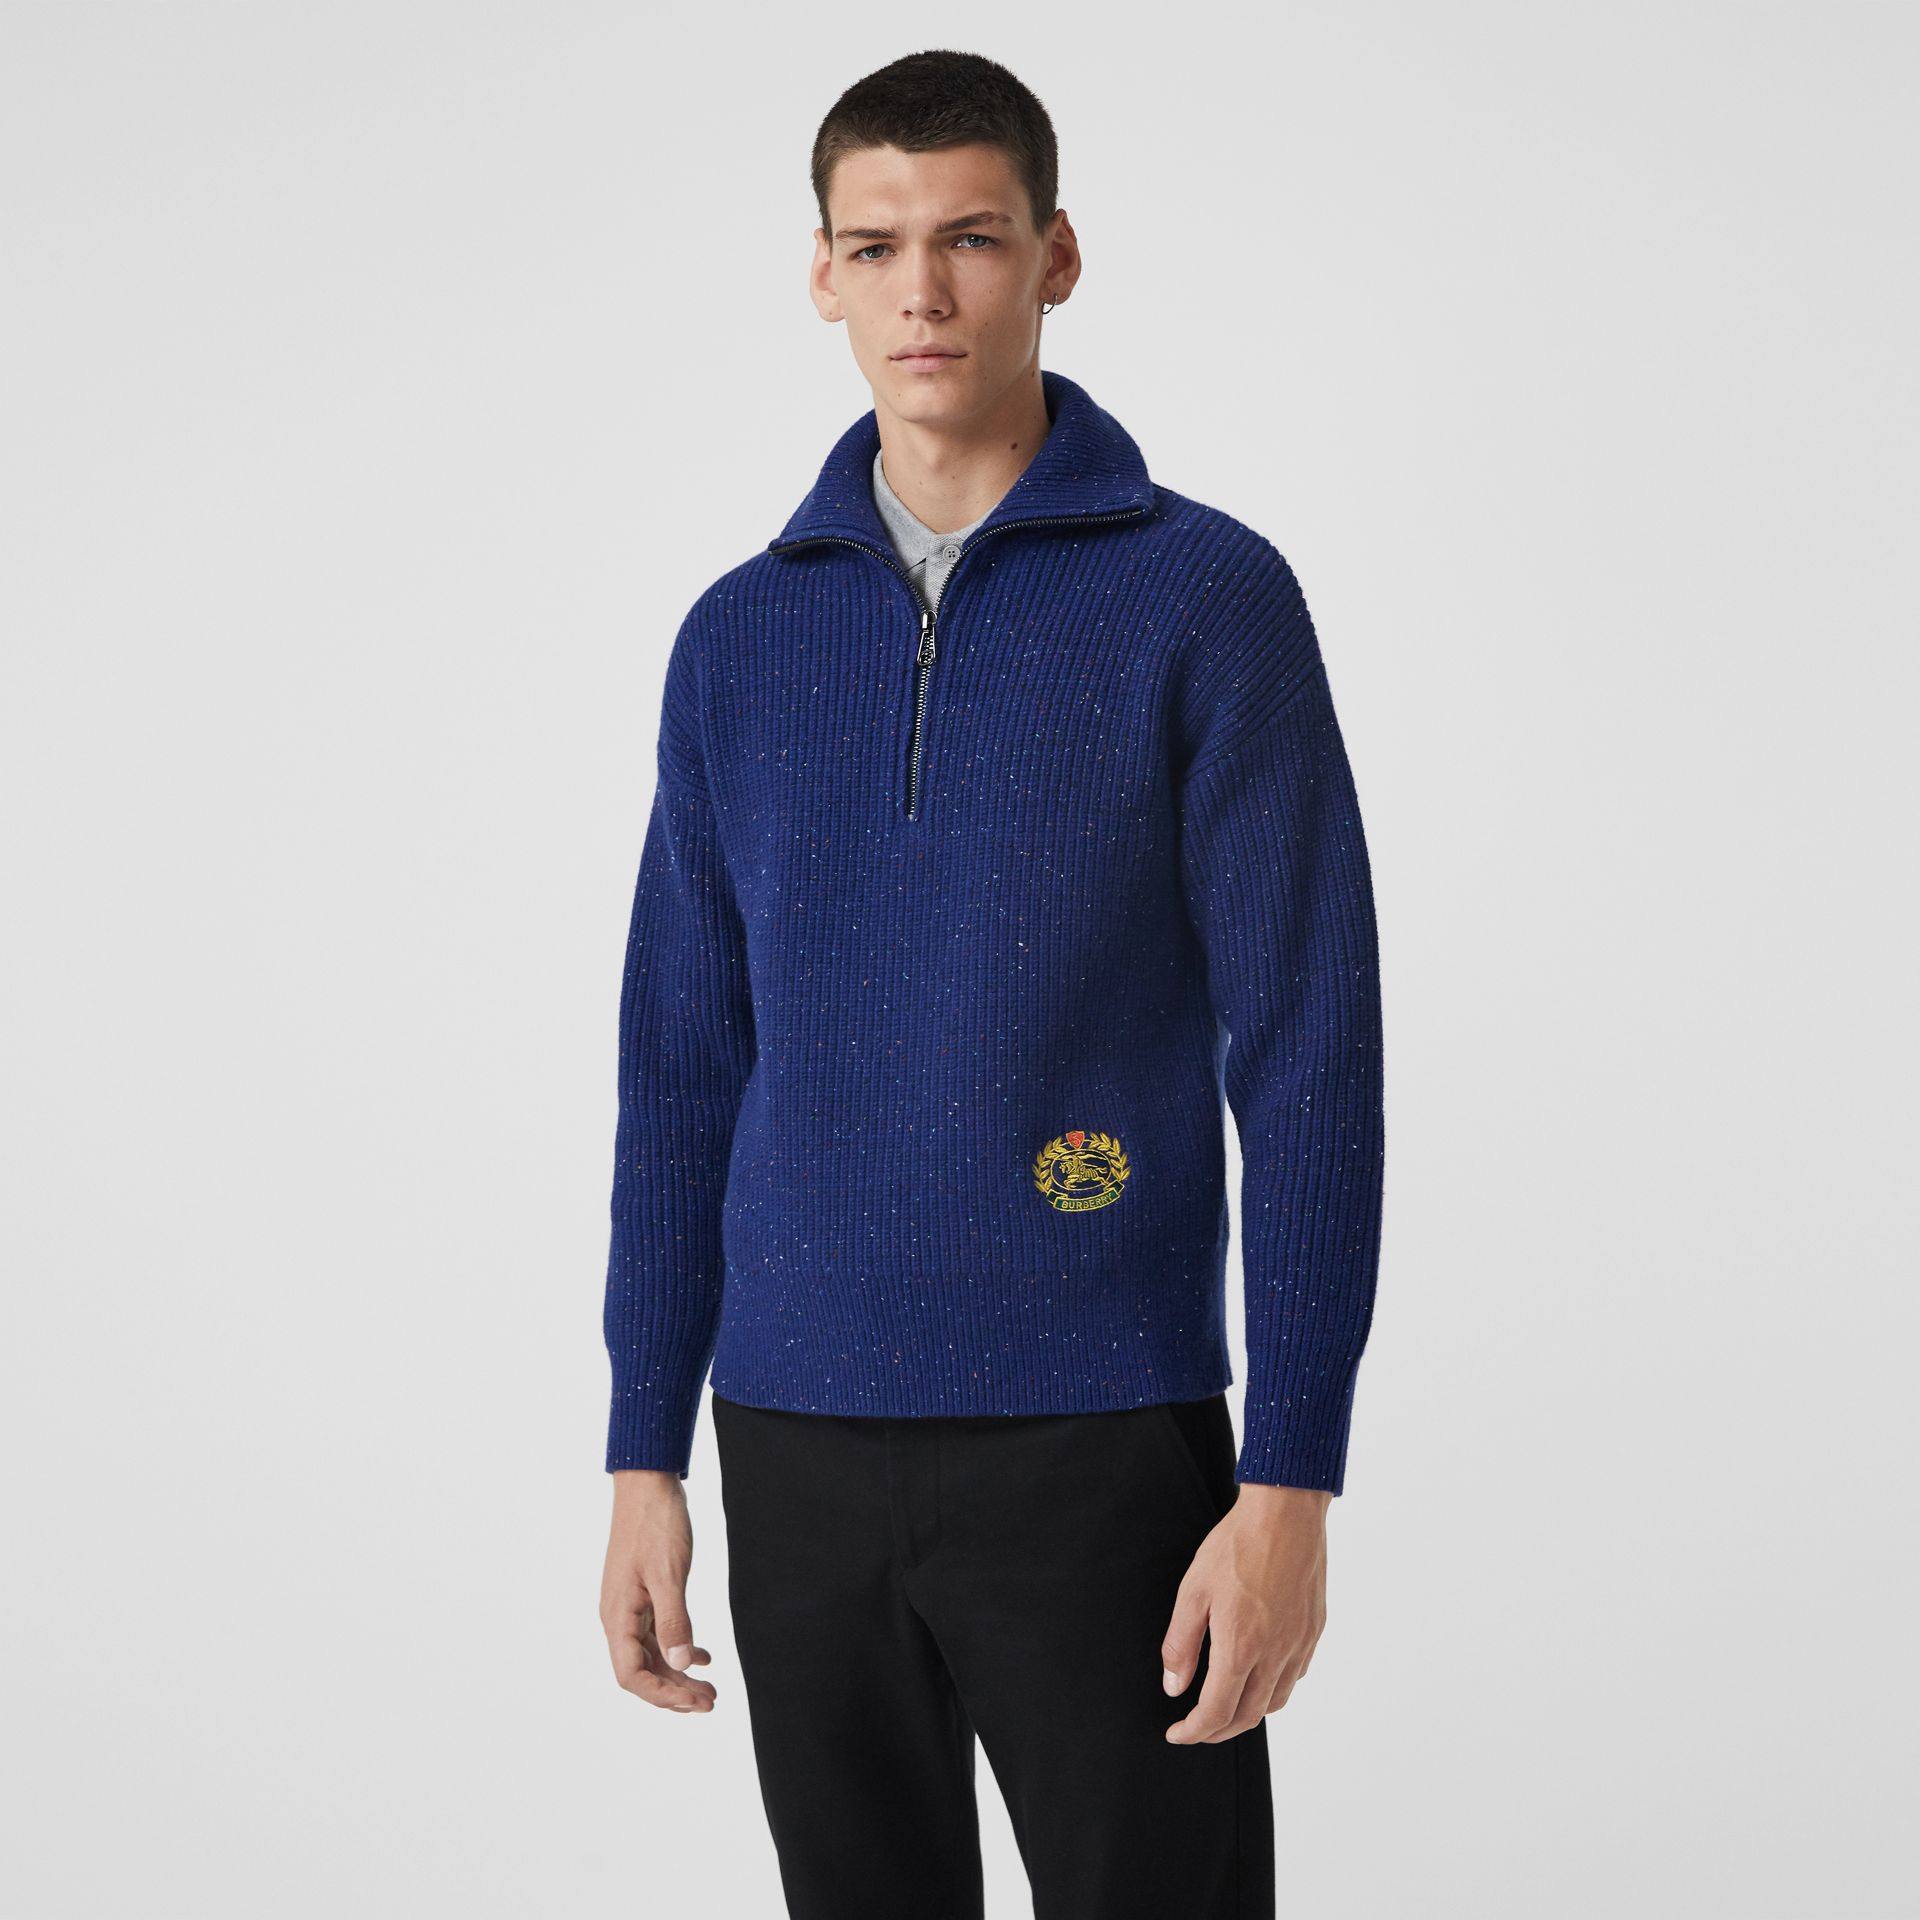 Rib Knit Wool Cashmere Blend Half-zip Sweater in Navy - Men | Burberry United Kingdom - gallery image 5